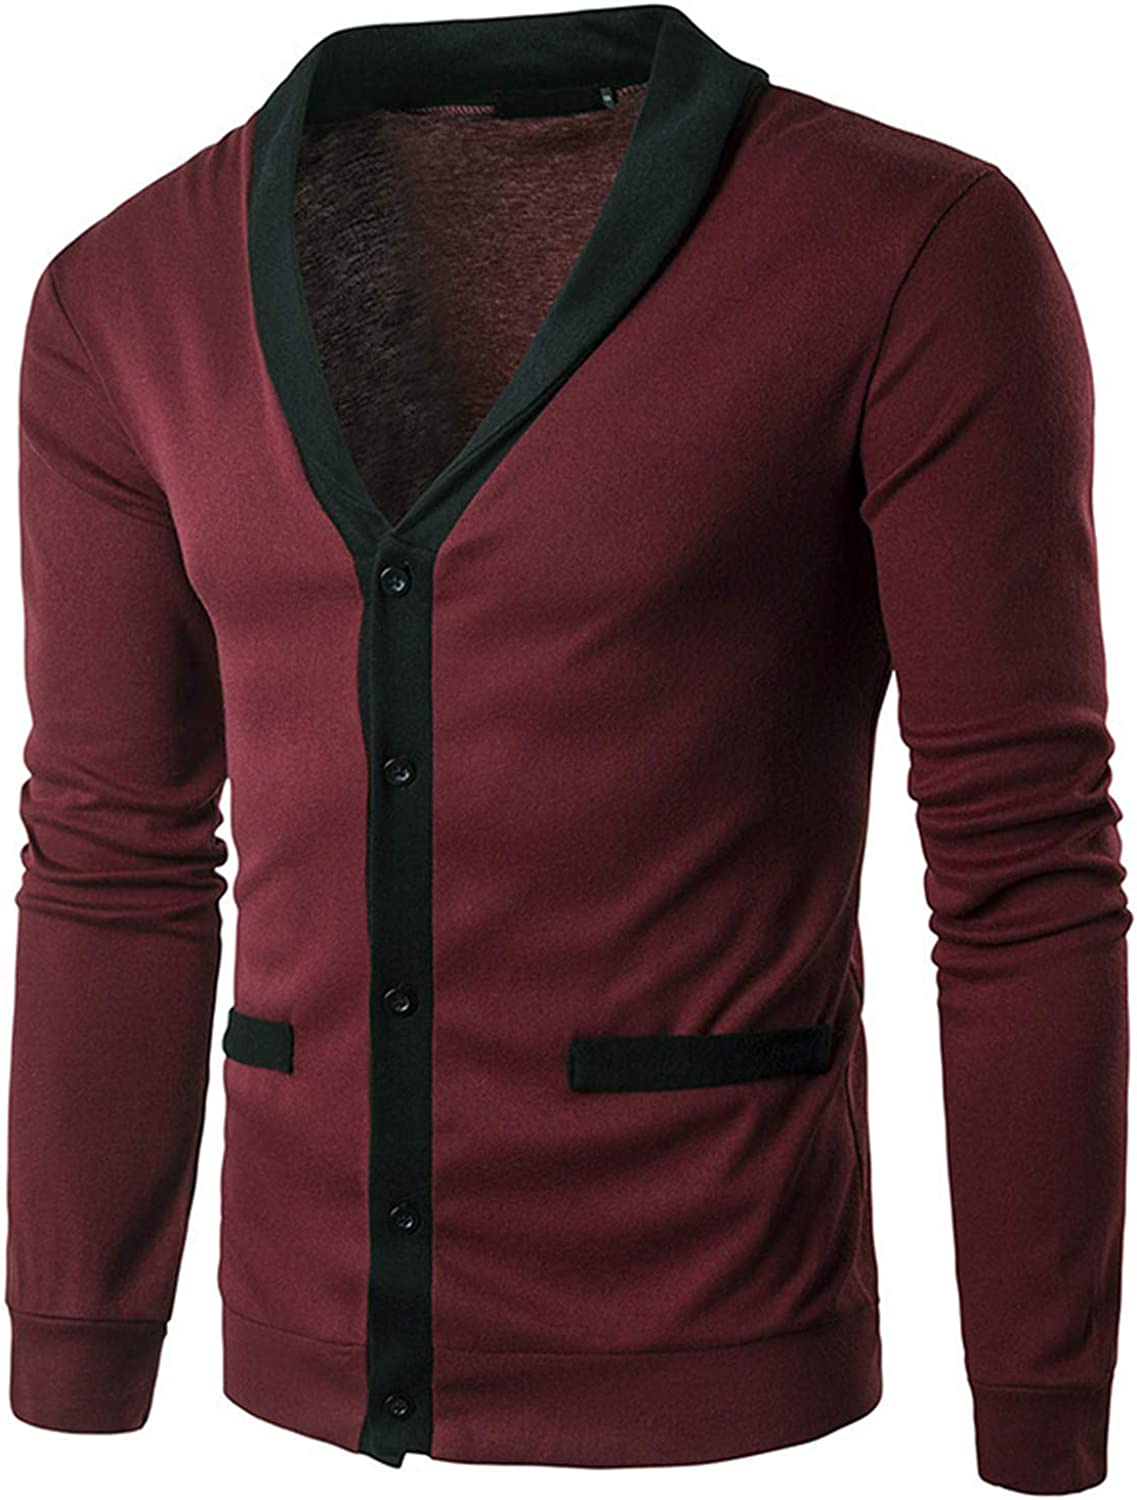 Soluo Men?s Cashmere Wool Blended Cardigan Sweater Relax Fit V-Neck Knitted Sweaters with Buttons & Pockets (Red Wine,Large)